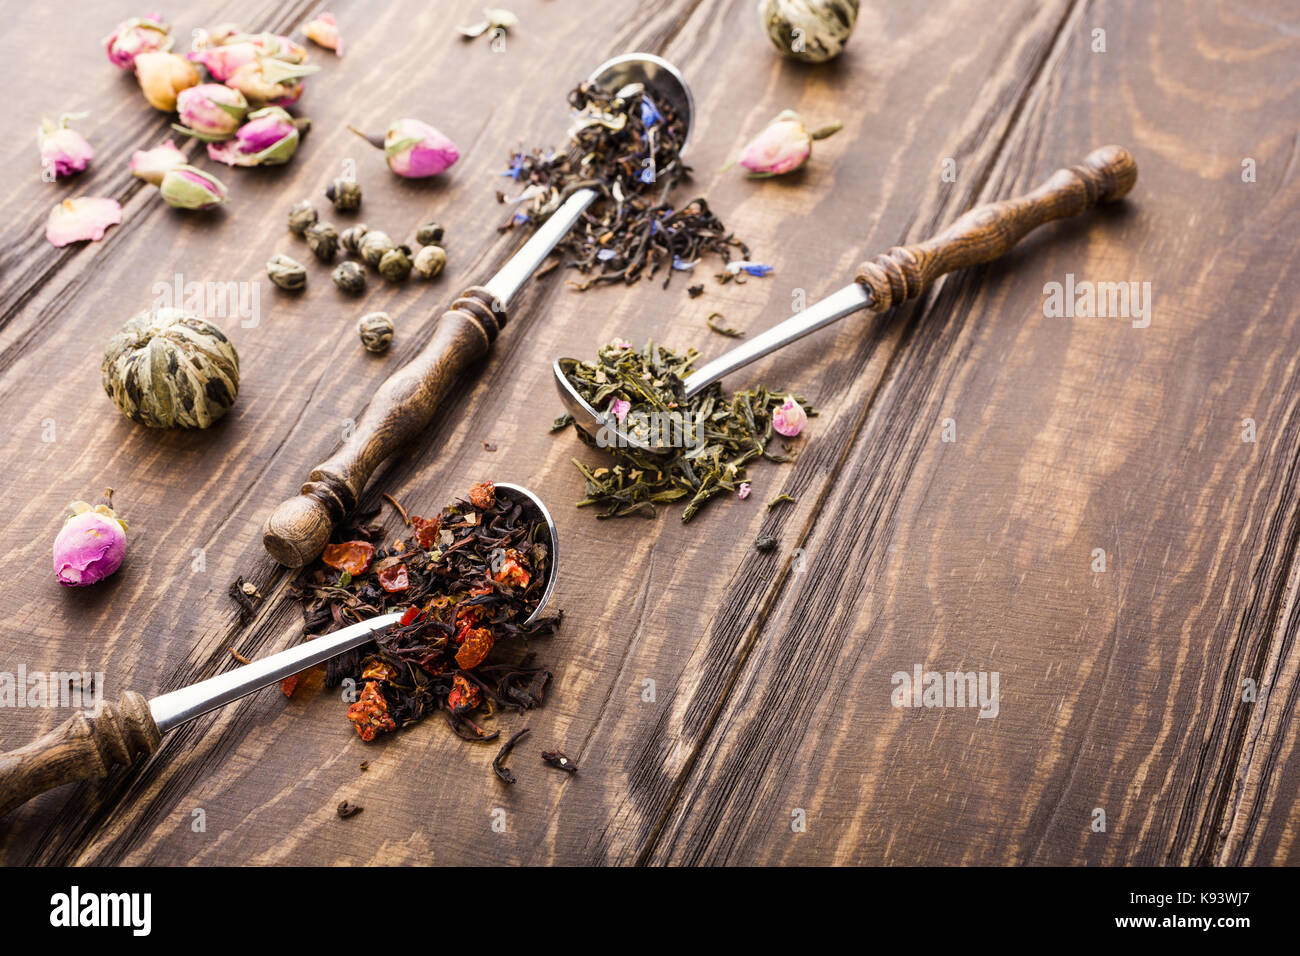 Background with different types of tea leaves - Stock Image